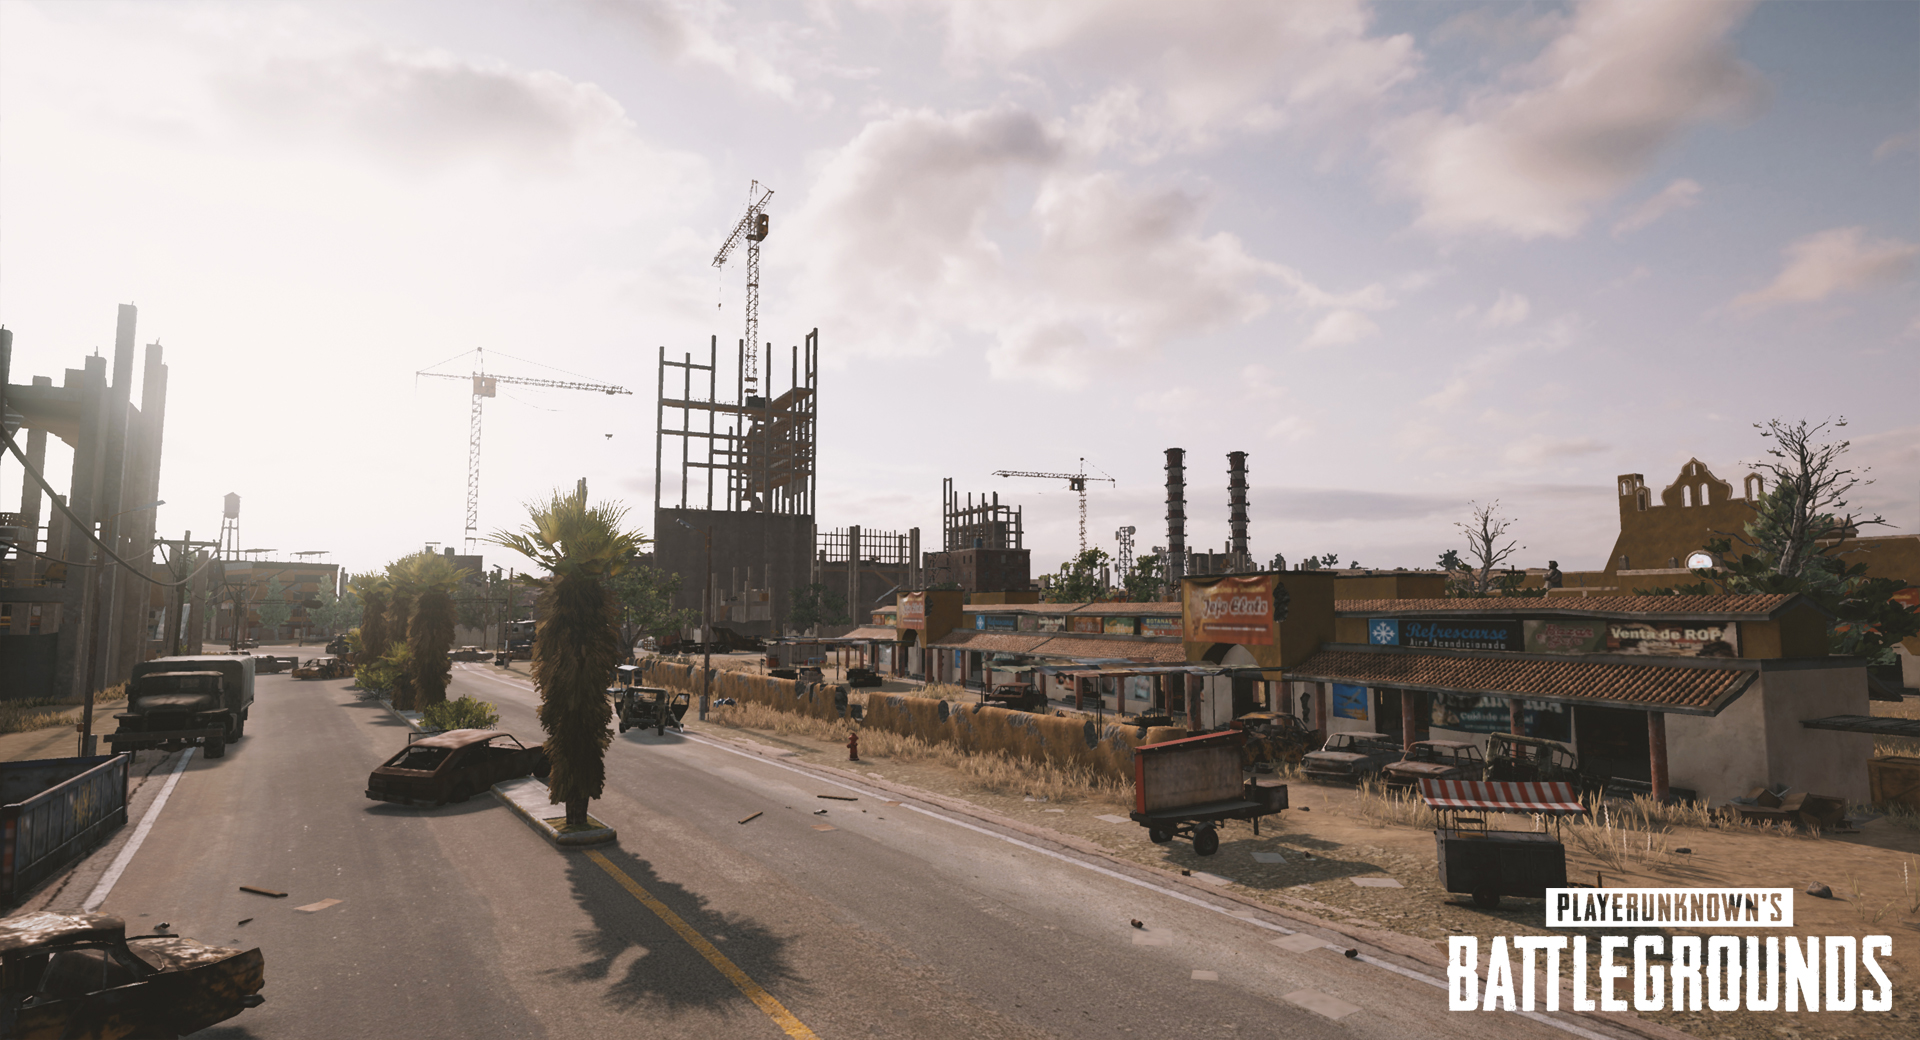 How To Enable Hd Graphics On Pubg Mobile Global Version: Check Out 5 New, Exclusive PUBG Desert Map Screenshots